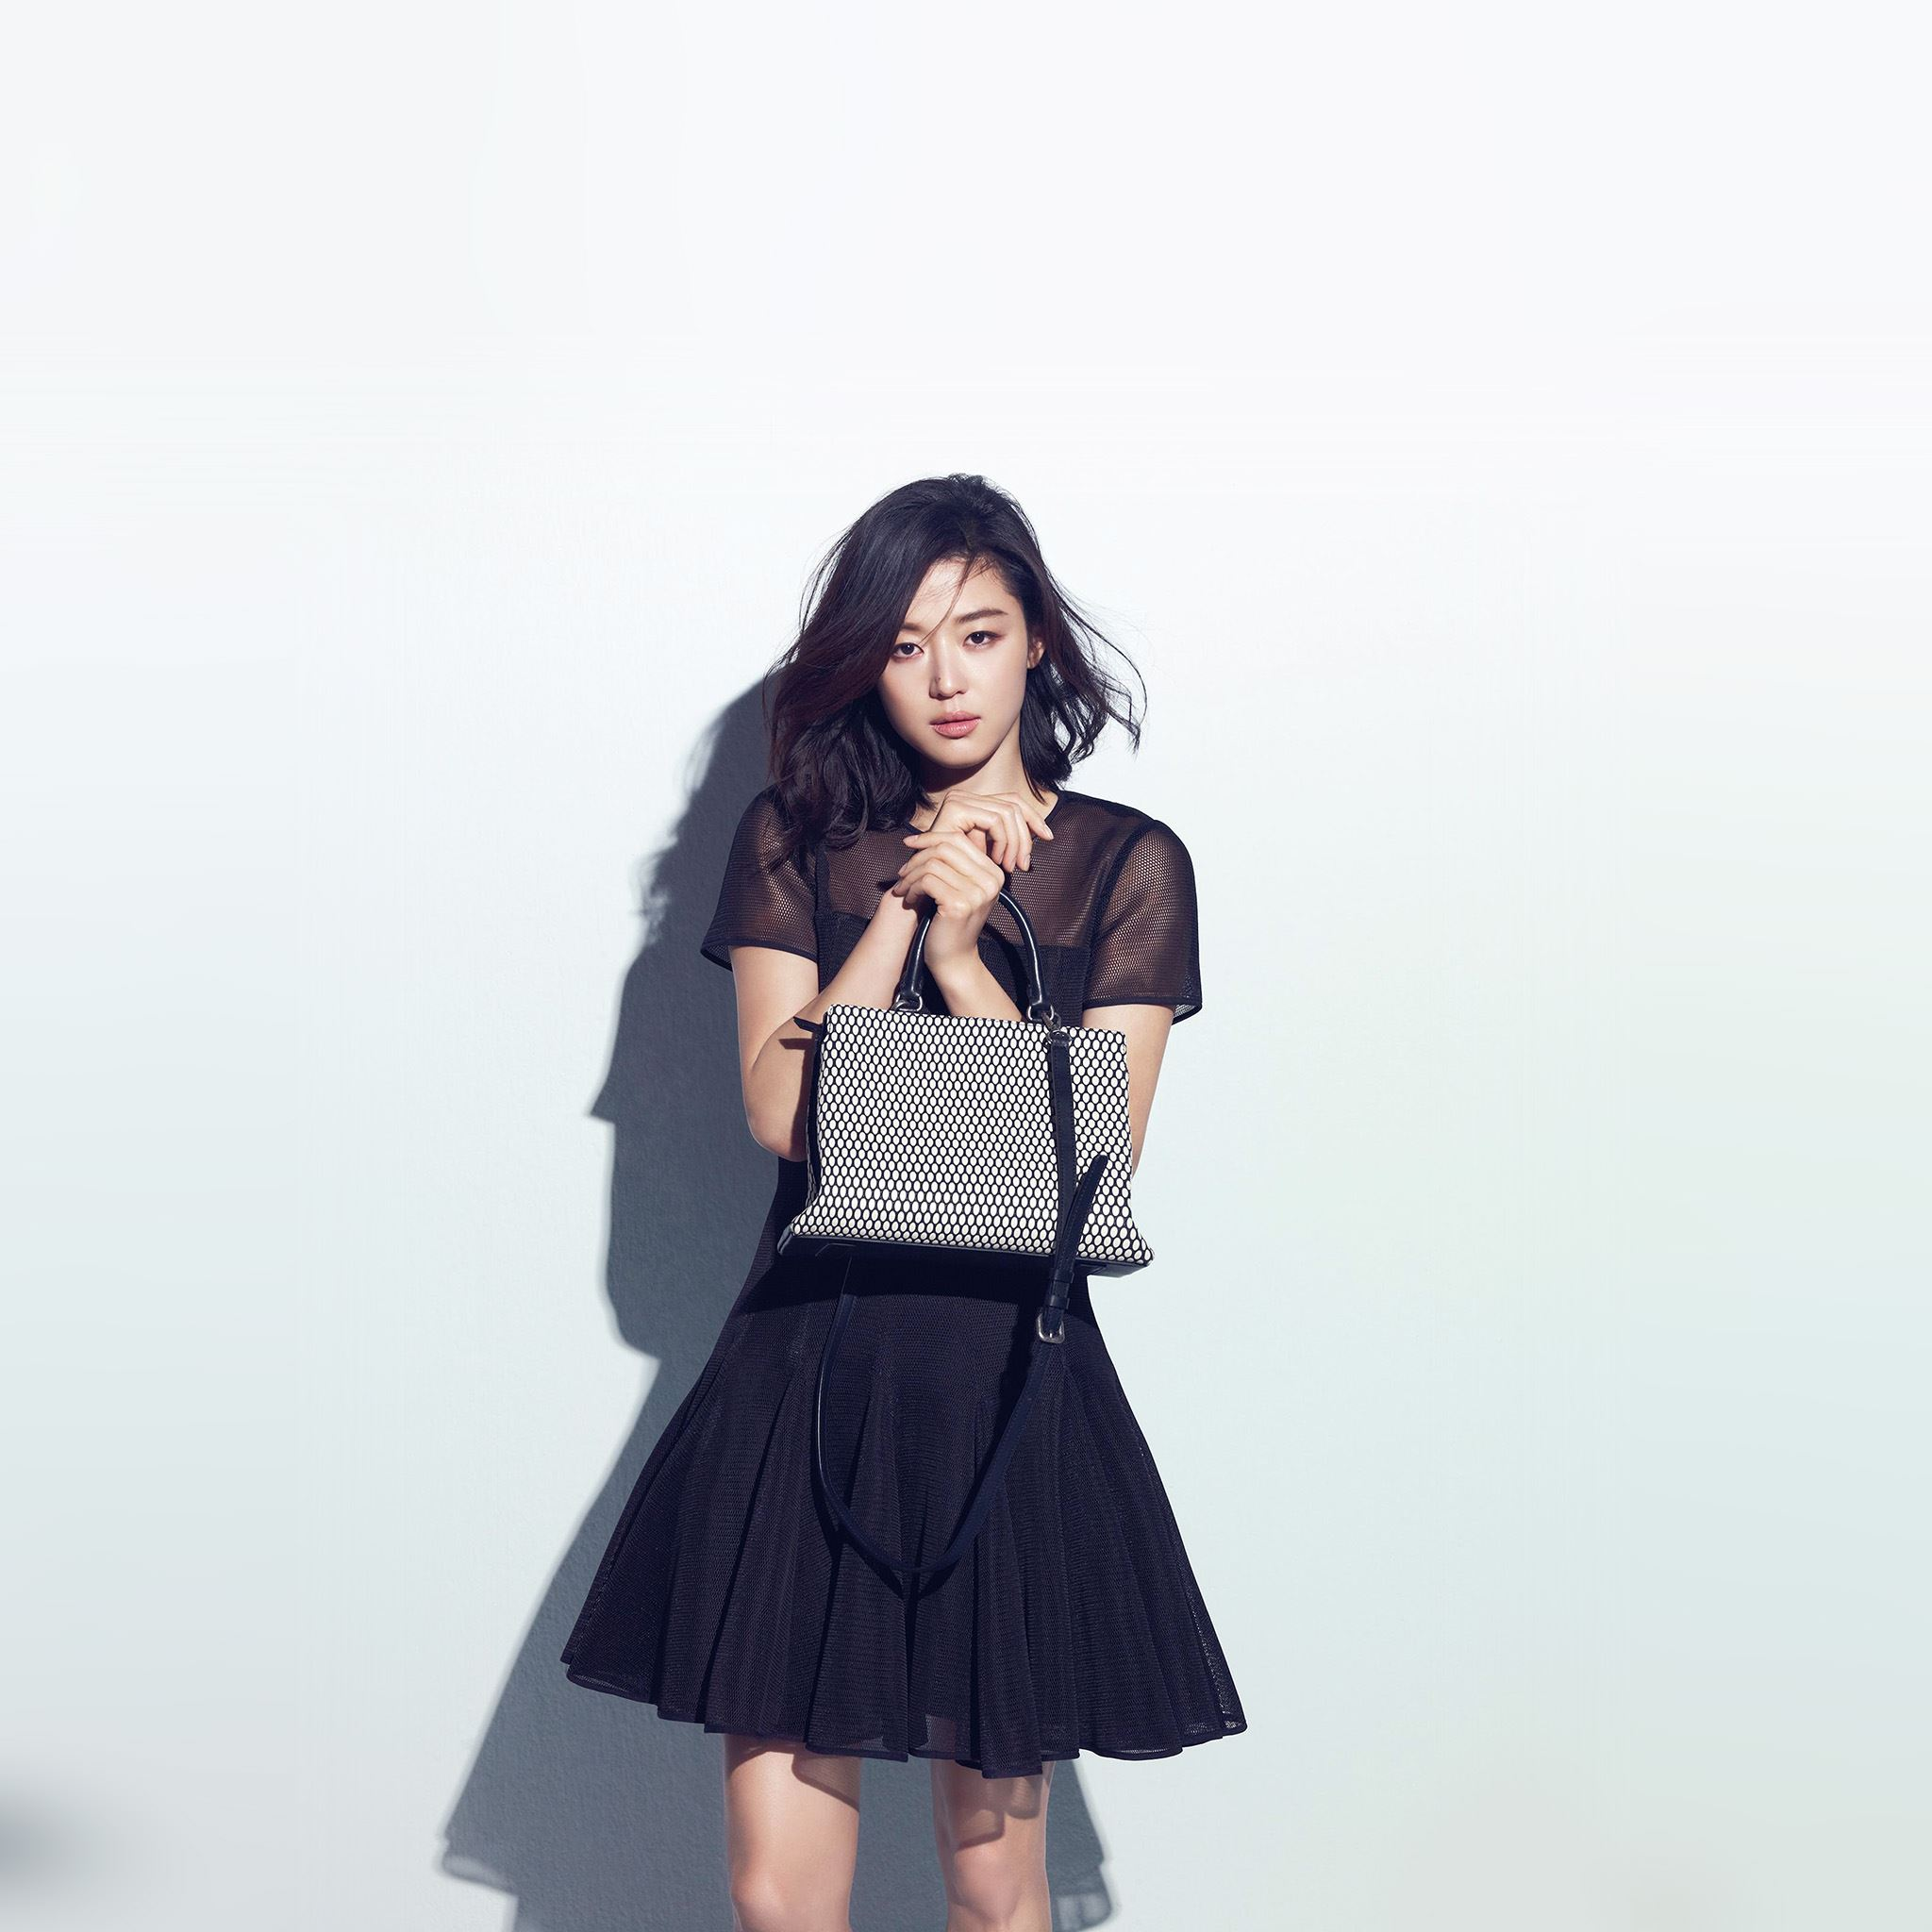 Jun Ji Hyun Actress Kpop Cute Beauty Blue Ipad Air